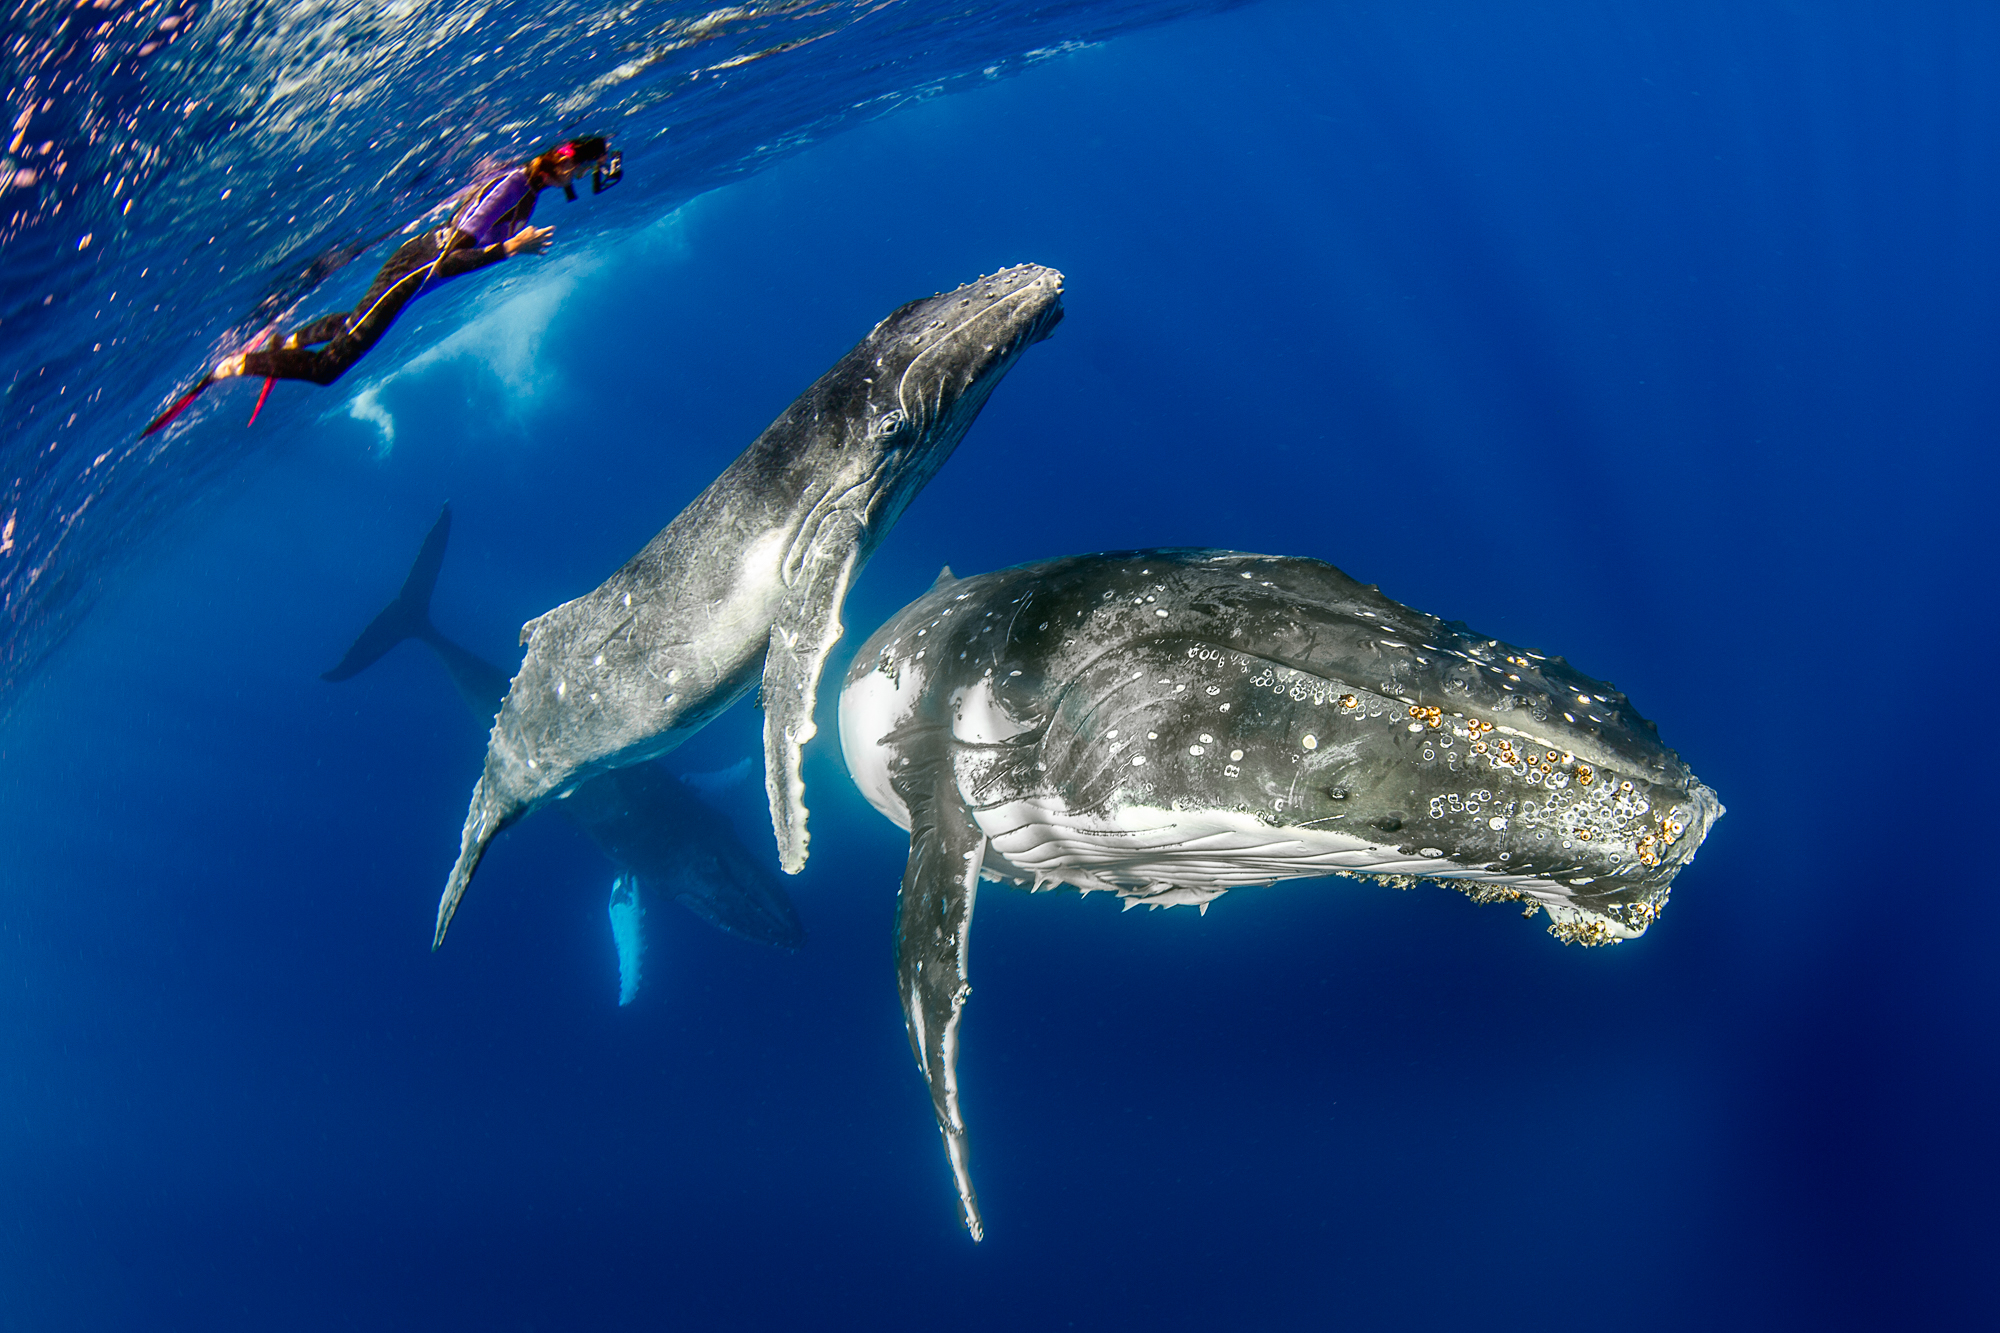 freediving & snorkeling with humpback whales in Vava'u, Tonga